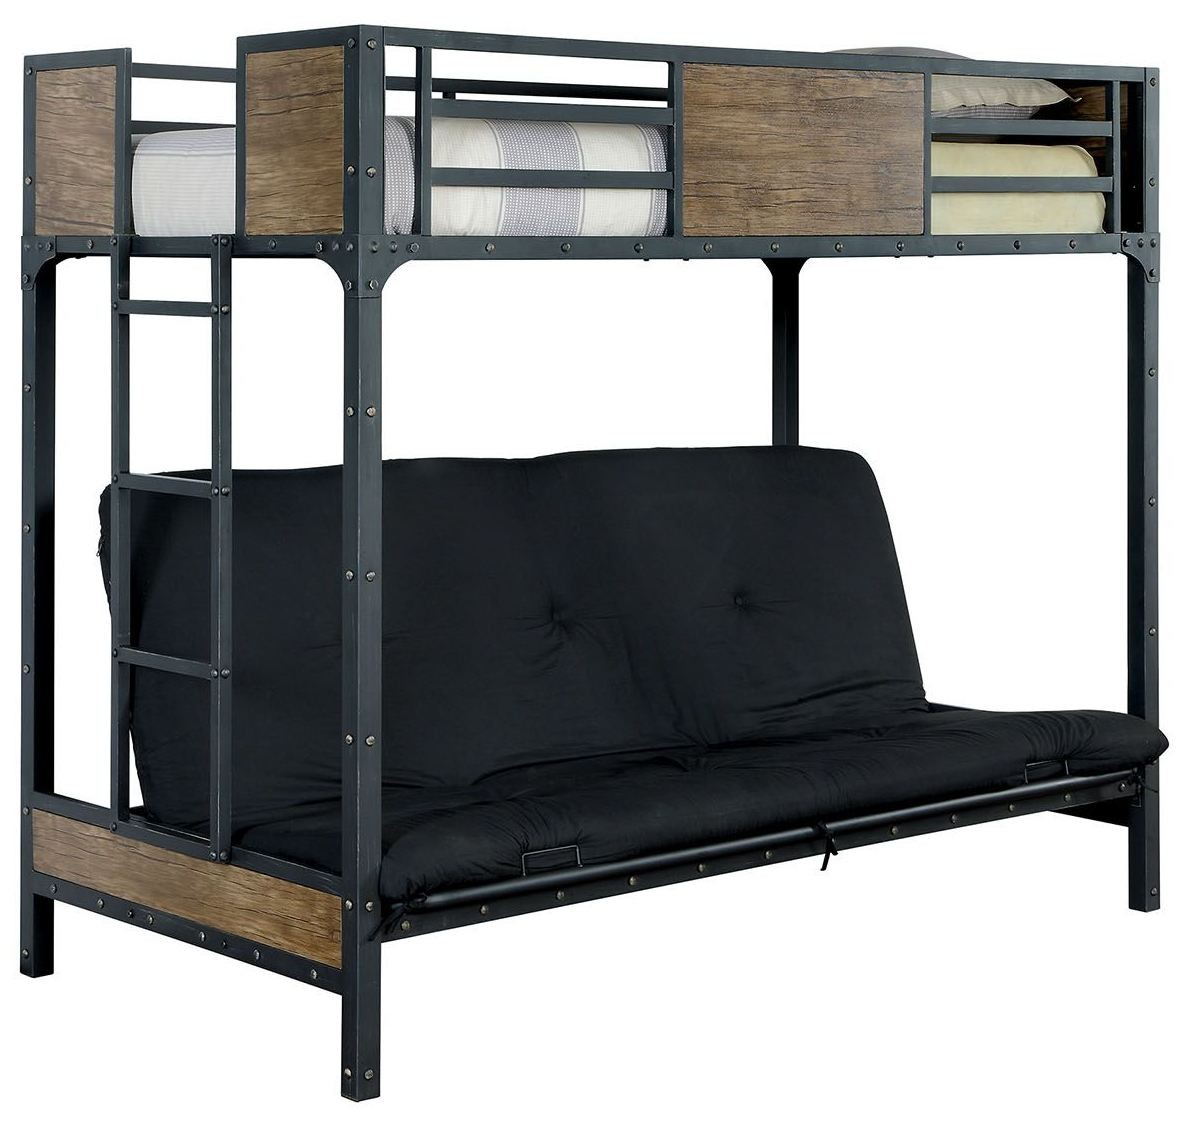 Twin Bed Sofa Bed: Clapton Twin Bed With Futon Base, CM-BK029TS, Furniture Of